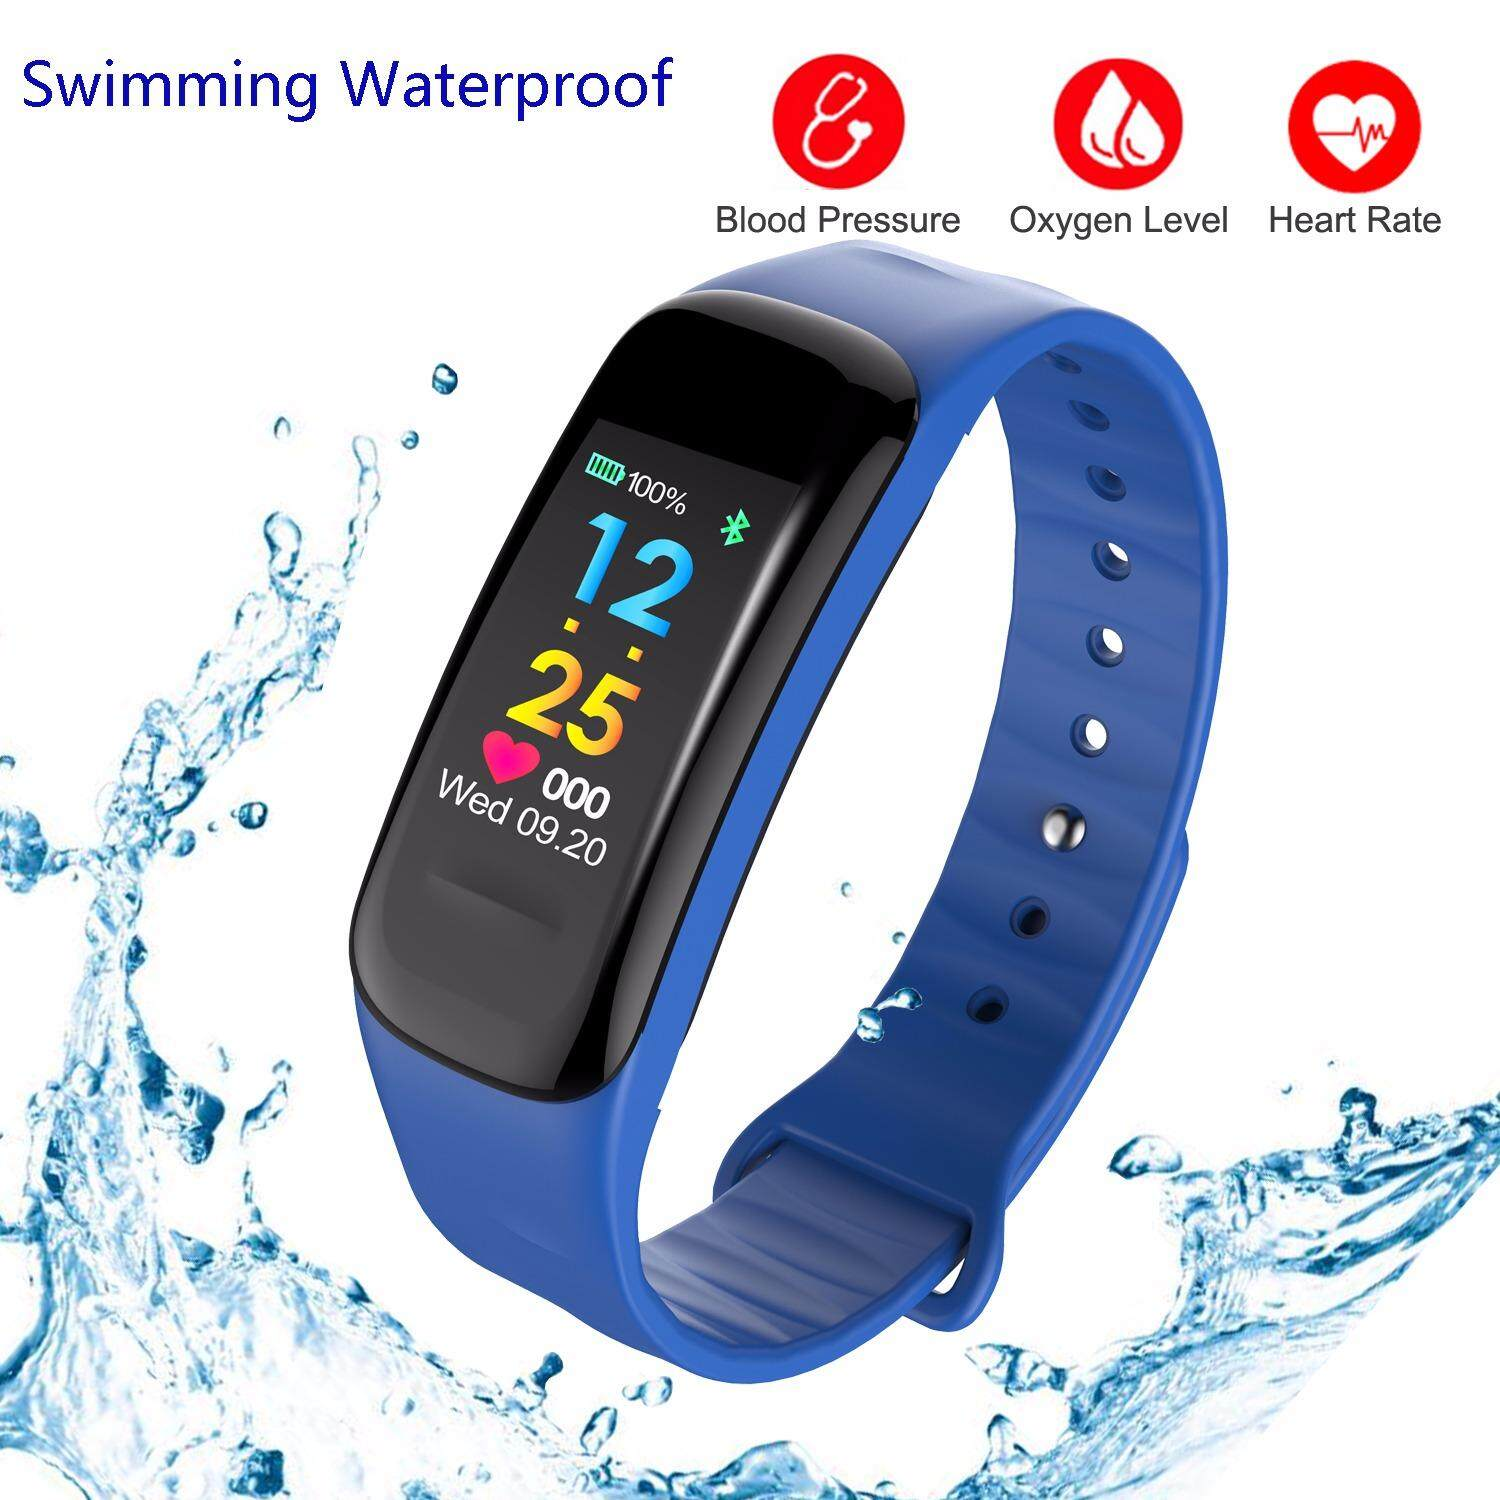 Price Sport Fitness Tracker Stopwatch Colorful Screen Swimming Waterproof Real Time Heart Rate Bp Monitor Activity Tracker Smart Band Calorie Sleep Monitoring Smart Bracelet Pedometer Smart Watch Intelligent Wristband Intl Xbotmax China